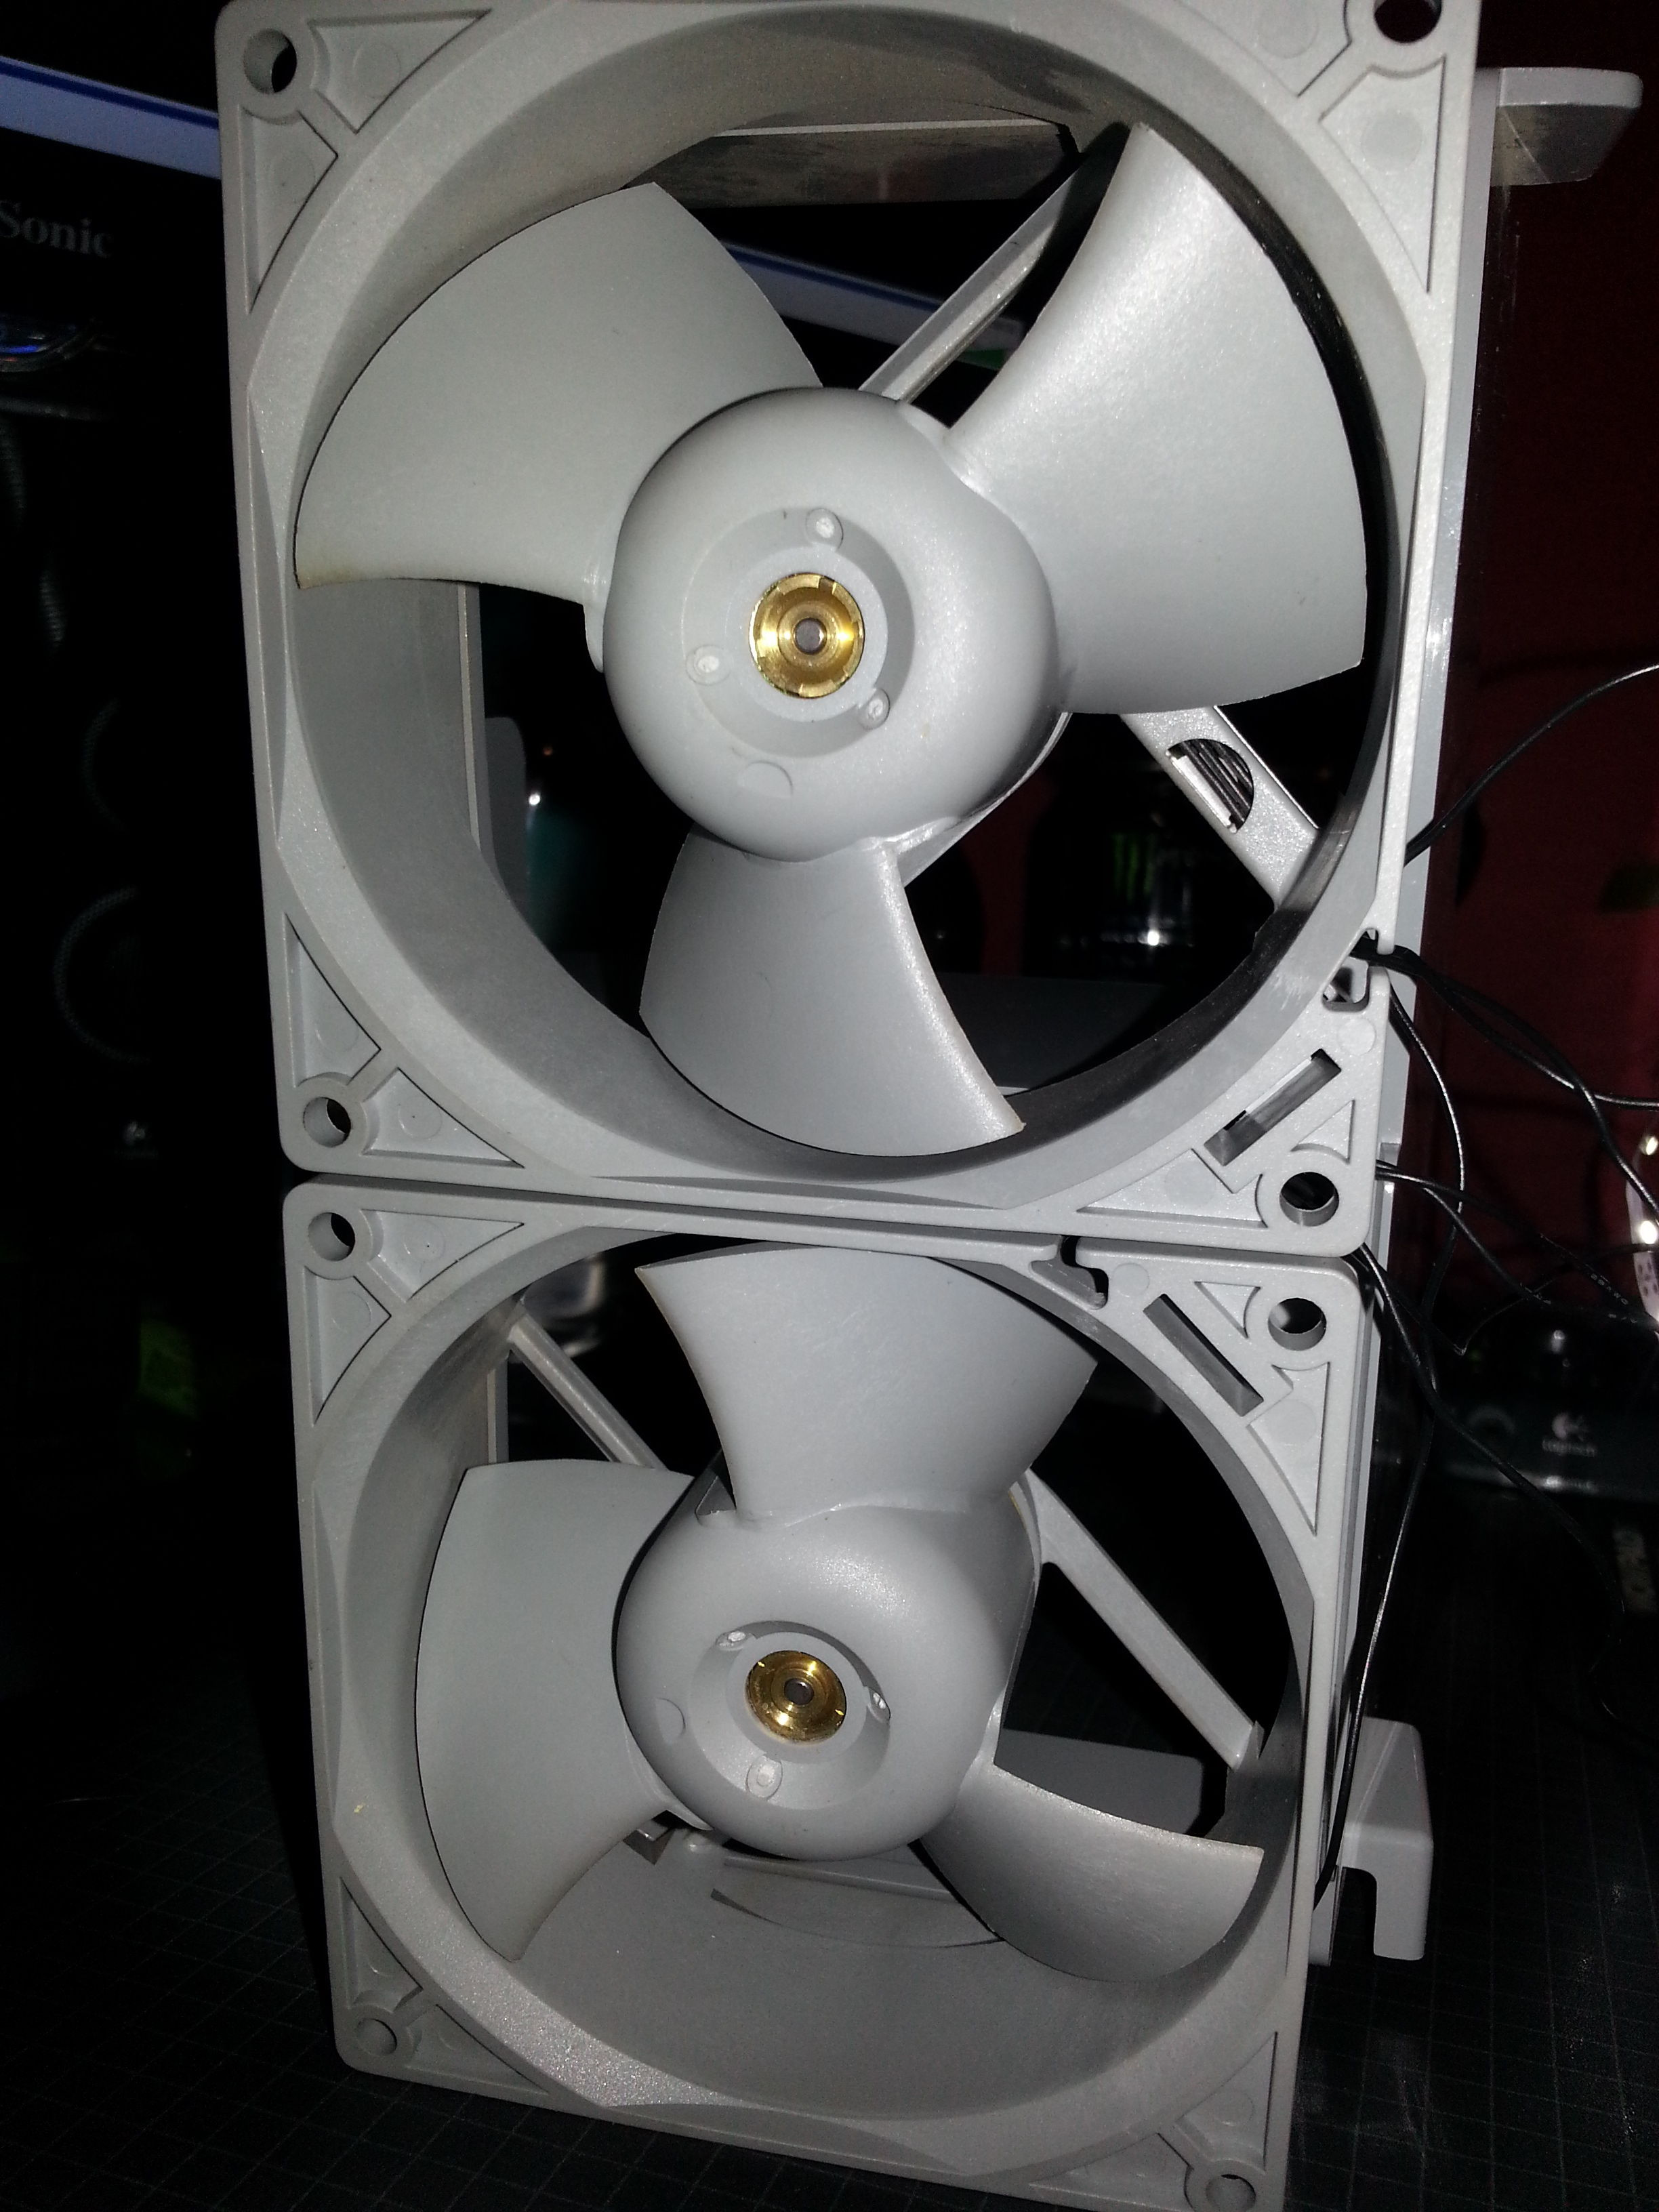 Need Help With 92mm Delta Fan Pinout Efb0912hhe Apple Mac Version Thread Mods Controller And Wirings Any Would Be Great Thanks In Advance